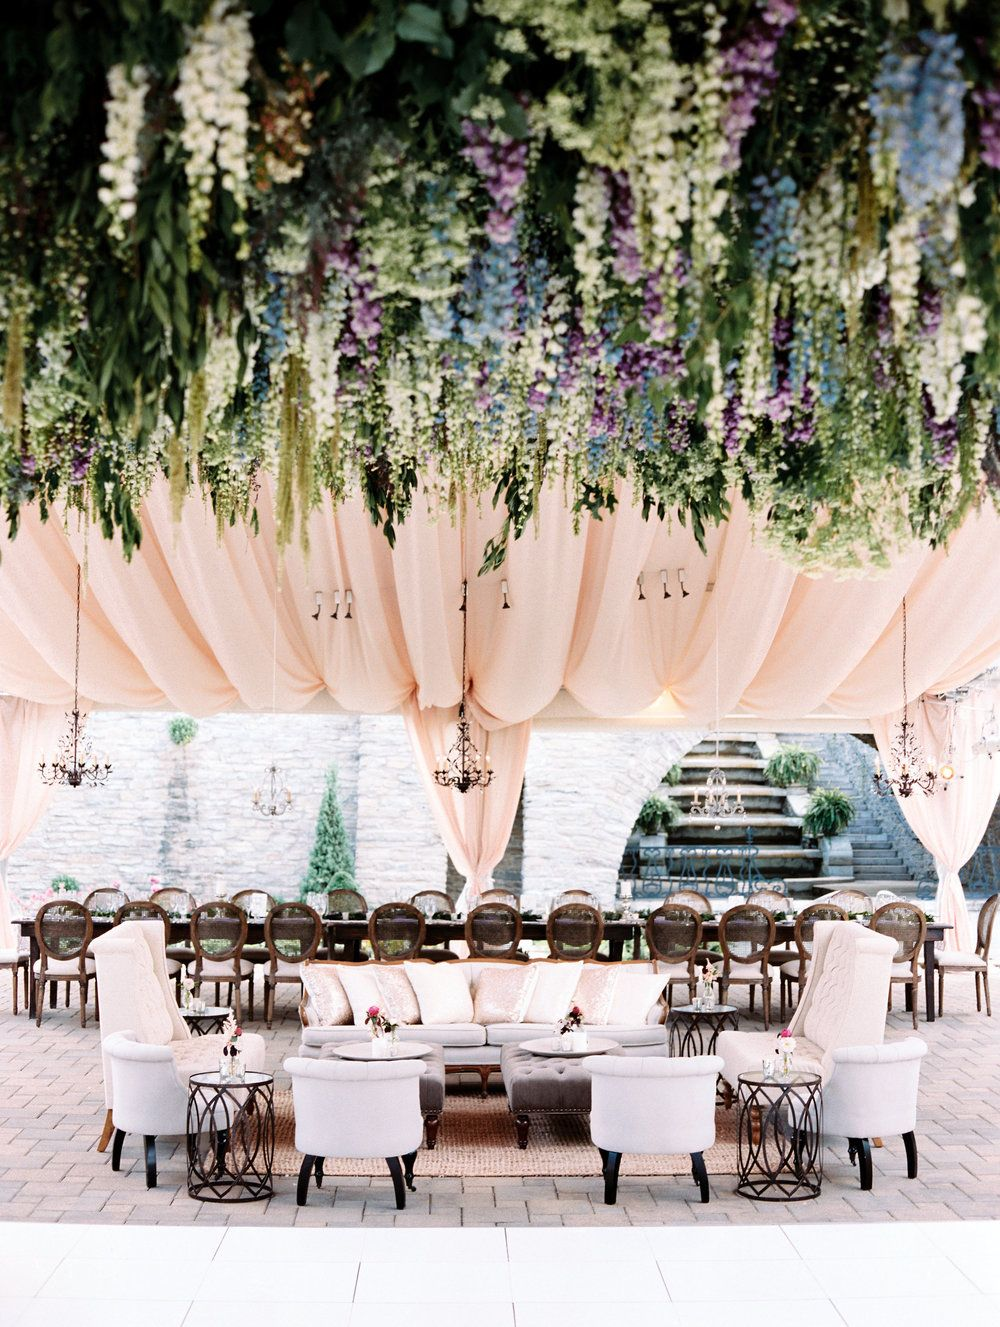 FLORAL CEILING FOR OUTDOOR RECEPTION A floral dreamland of peony, larkspur, rose, hydrangea and astilbe at this rustic and glamorous outdoor wedding at Greenacres Art Center. We created a floral installation layered with over 14,000 blooms that hung from the airy blush reception tent.